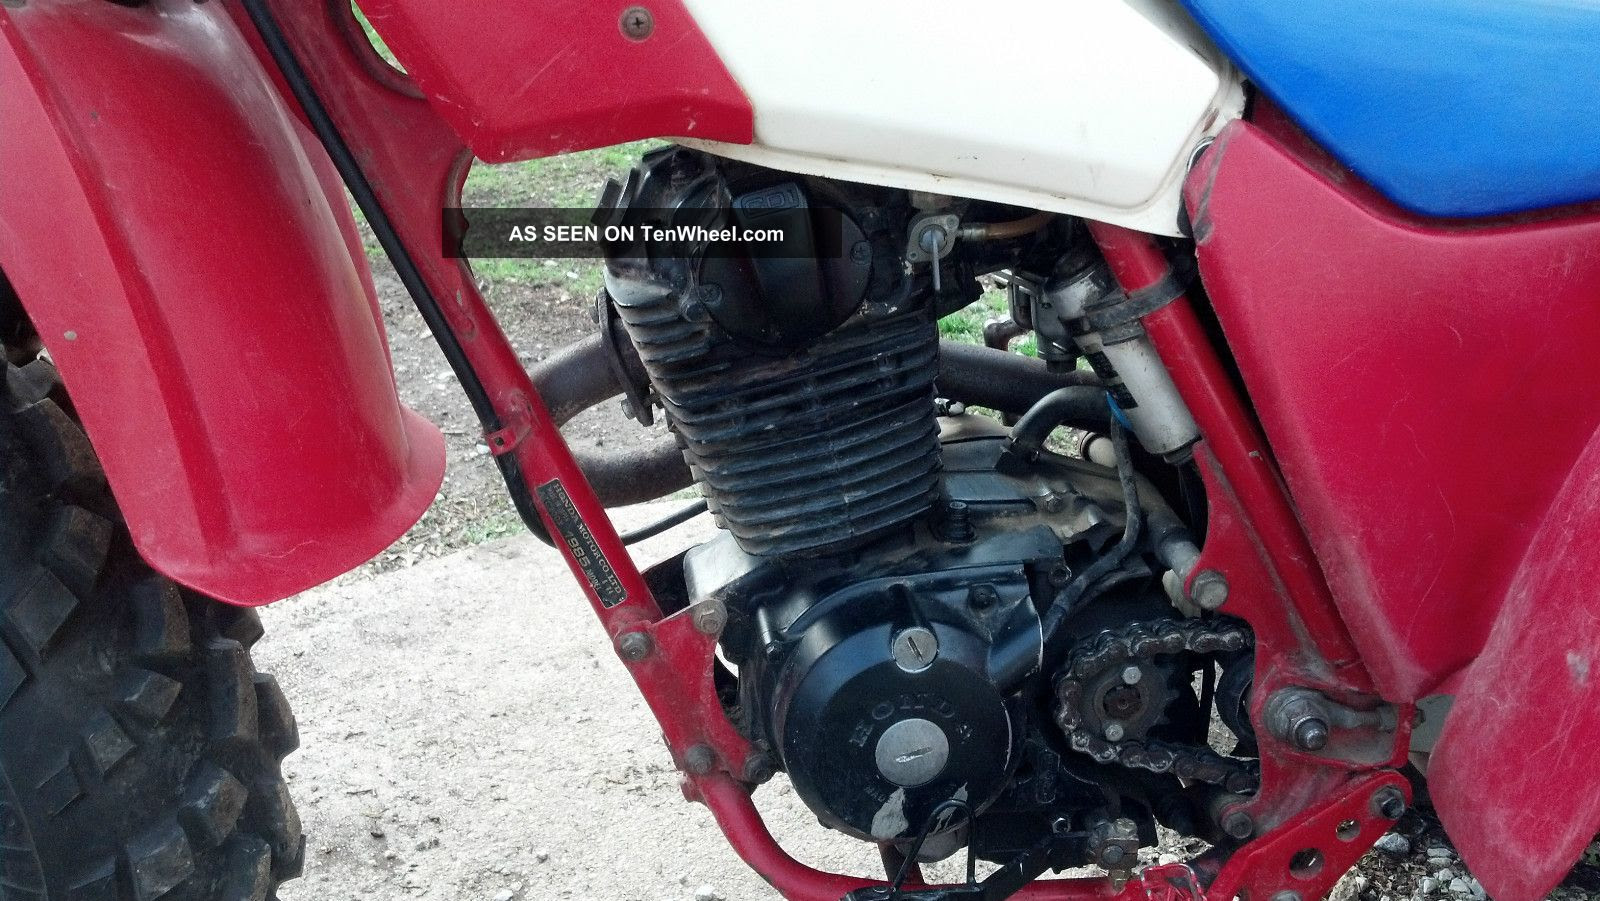 1984 Honda Moped Wiring Diagram